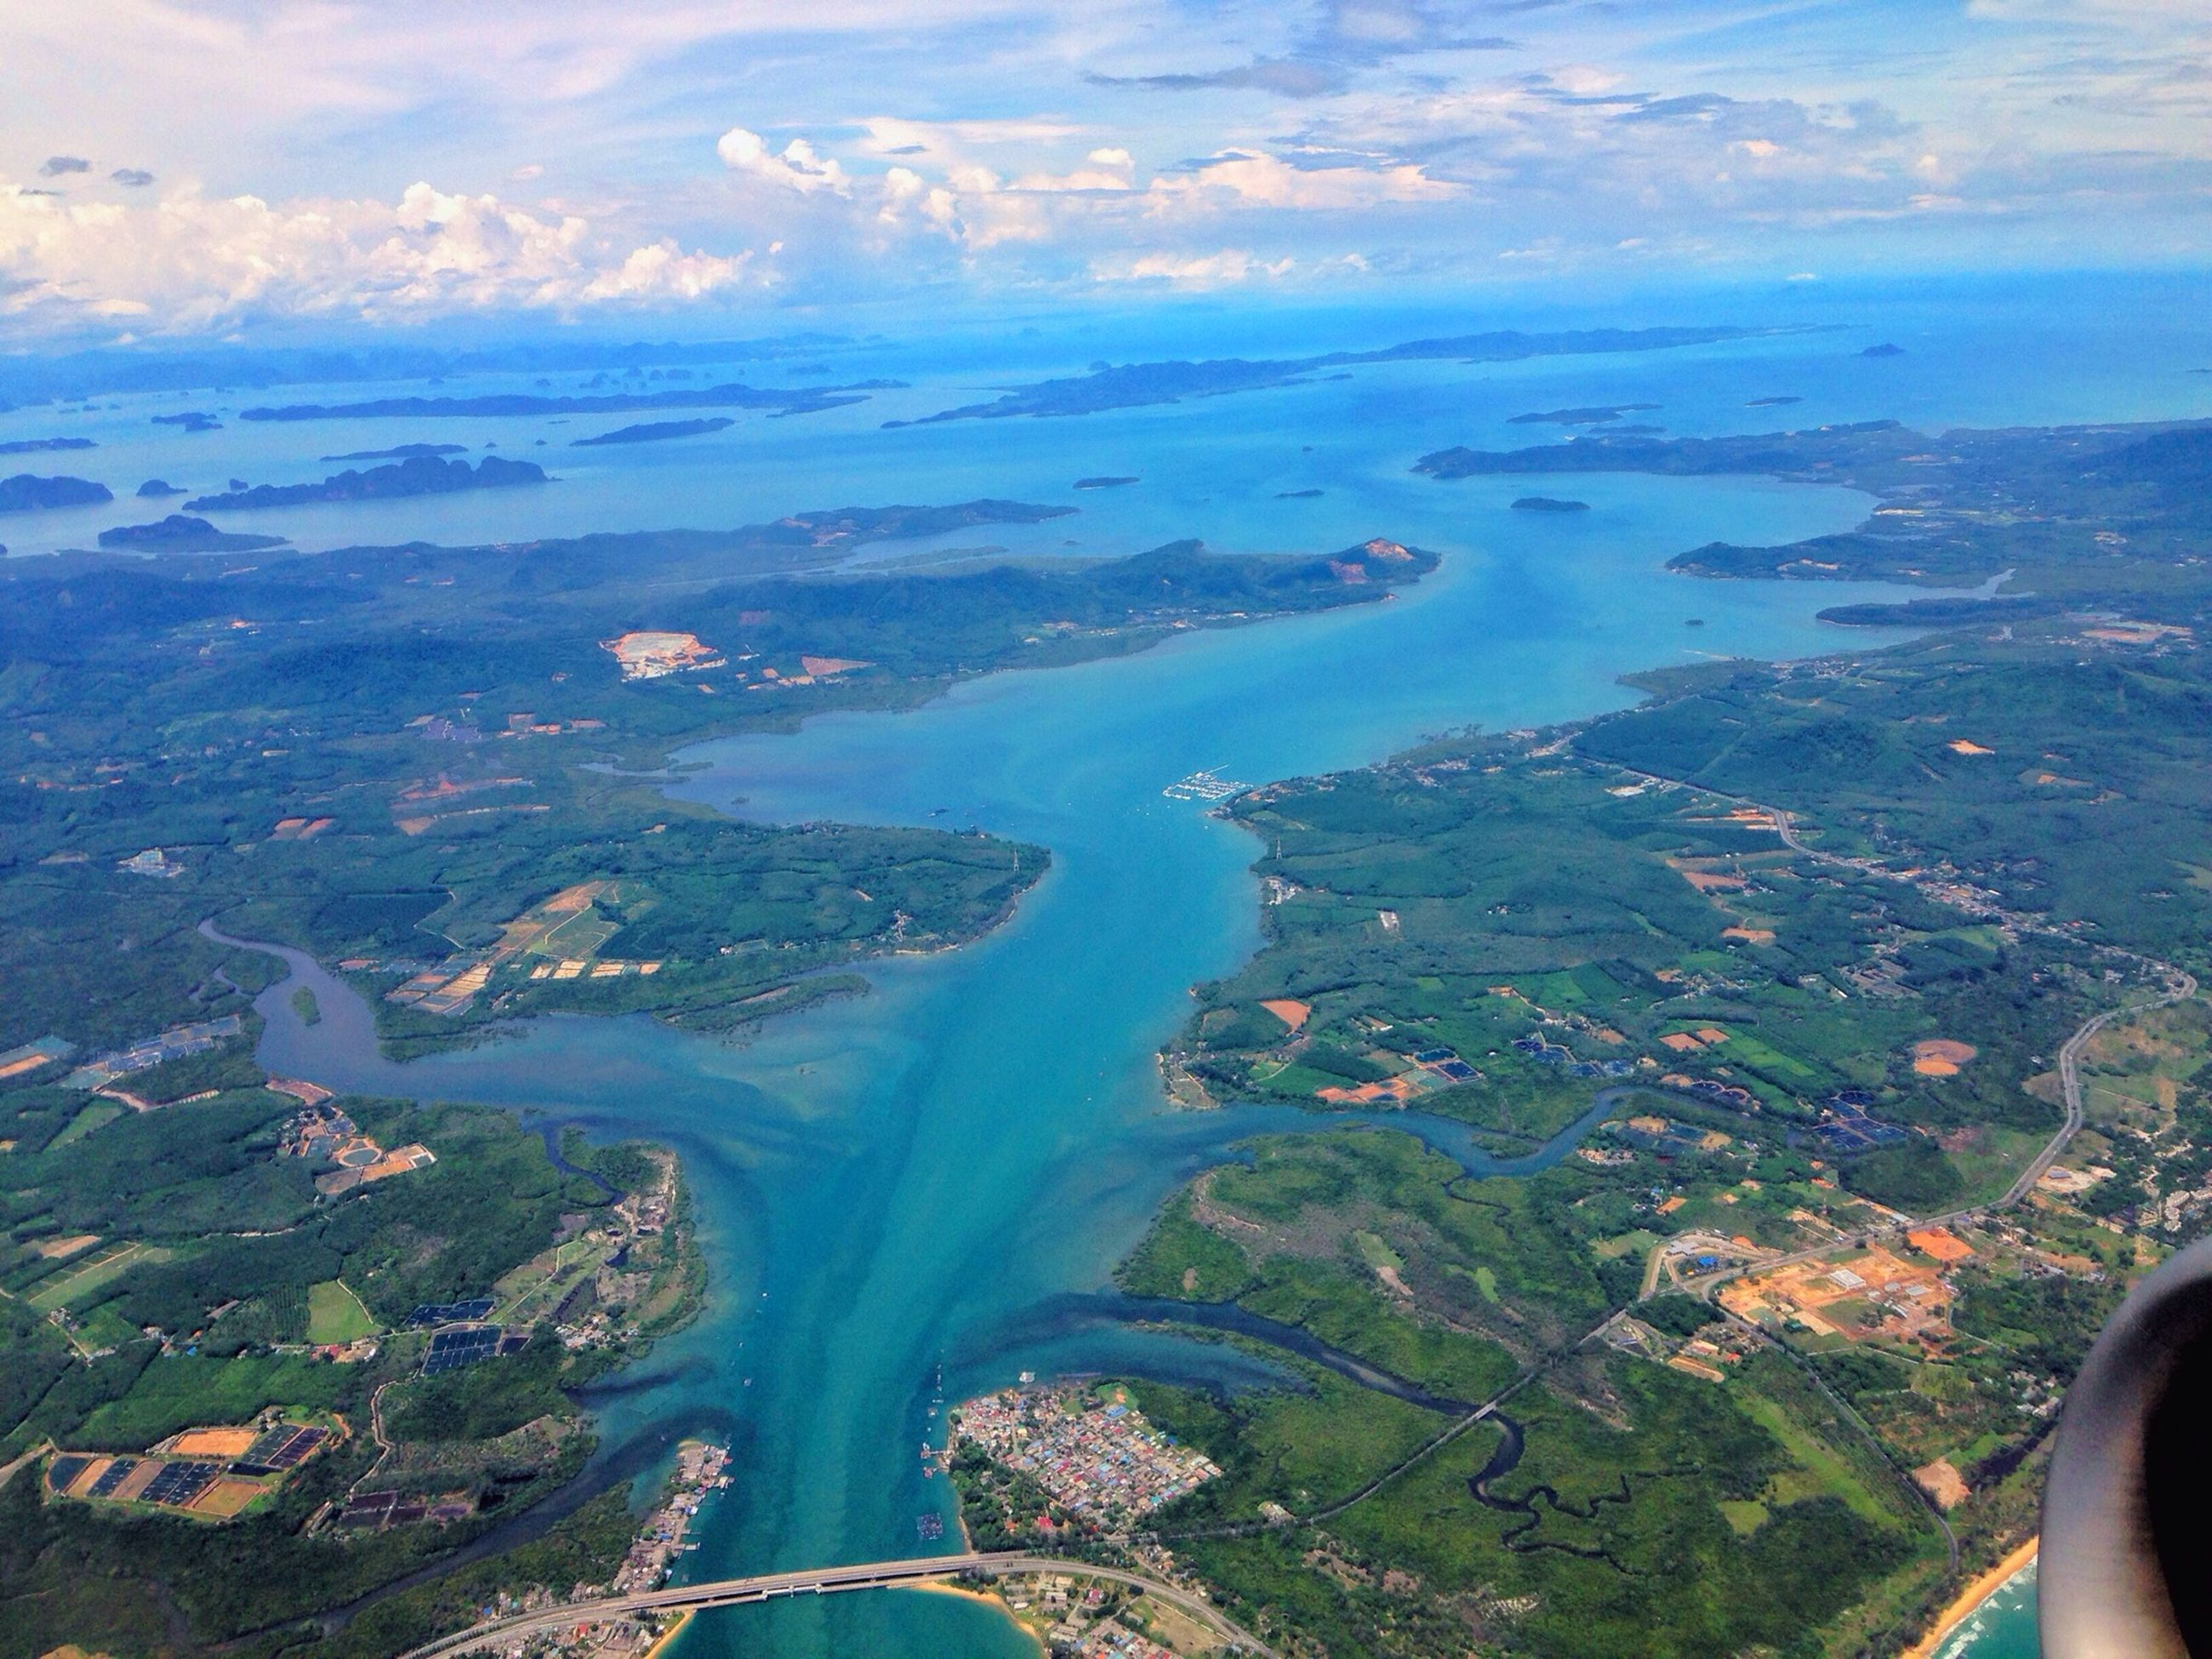 aerial view, sky, scenics, transportation, landscape, beauty in nature, sea, nature, high angle view, airplane, tranquil scene, mode of transport, part of, water, mountain, cloud - sky, travel, vehicle interior, tranquility, cropped